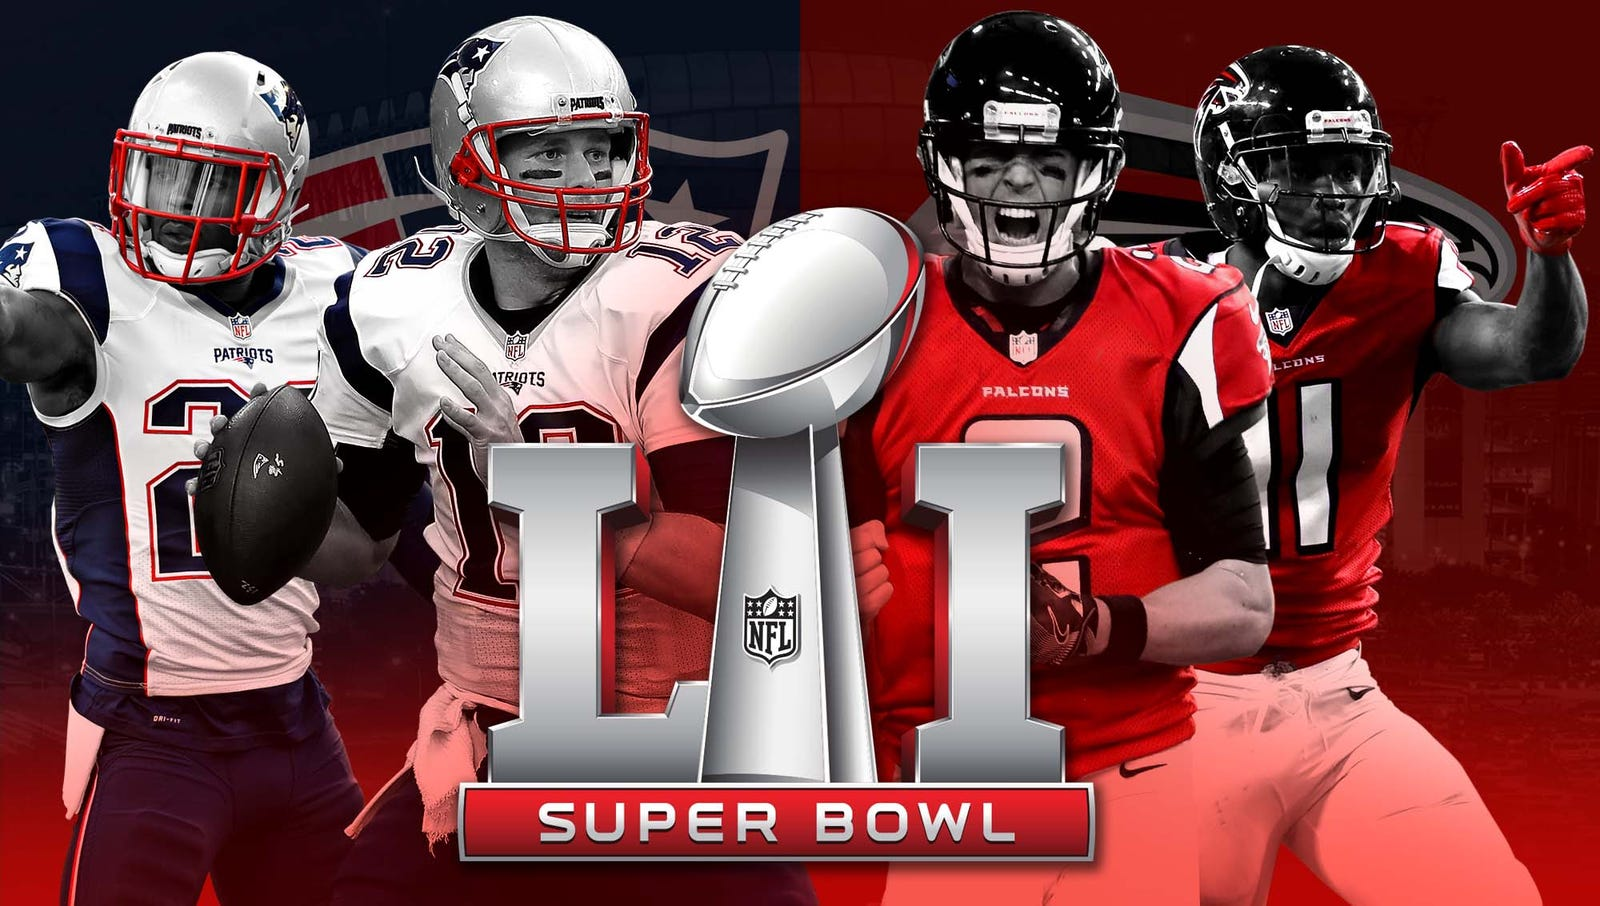 Quarterbacks Matt Ryan and Tom Brady both have what it takes to lead their team to victory, but only one will be eulogized 15 years from now as the champion of Super Bowl LI. Onion Sports offers the most in-depth preview of Sunday's game between the New England Patriots and the Atlanta Falcons.